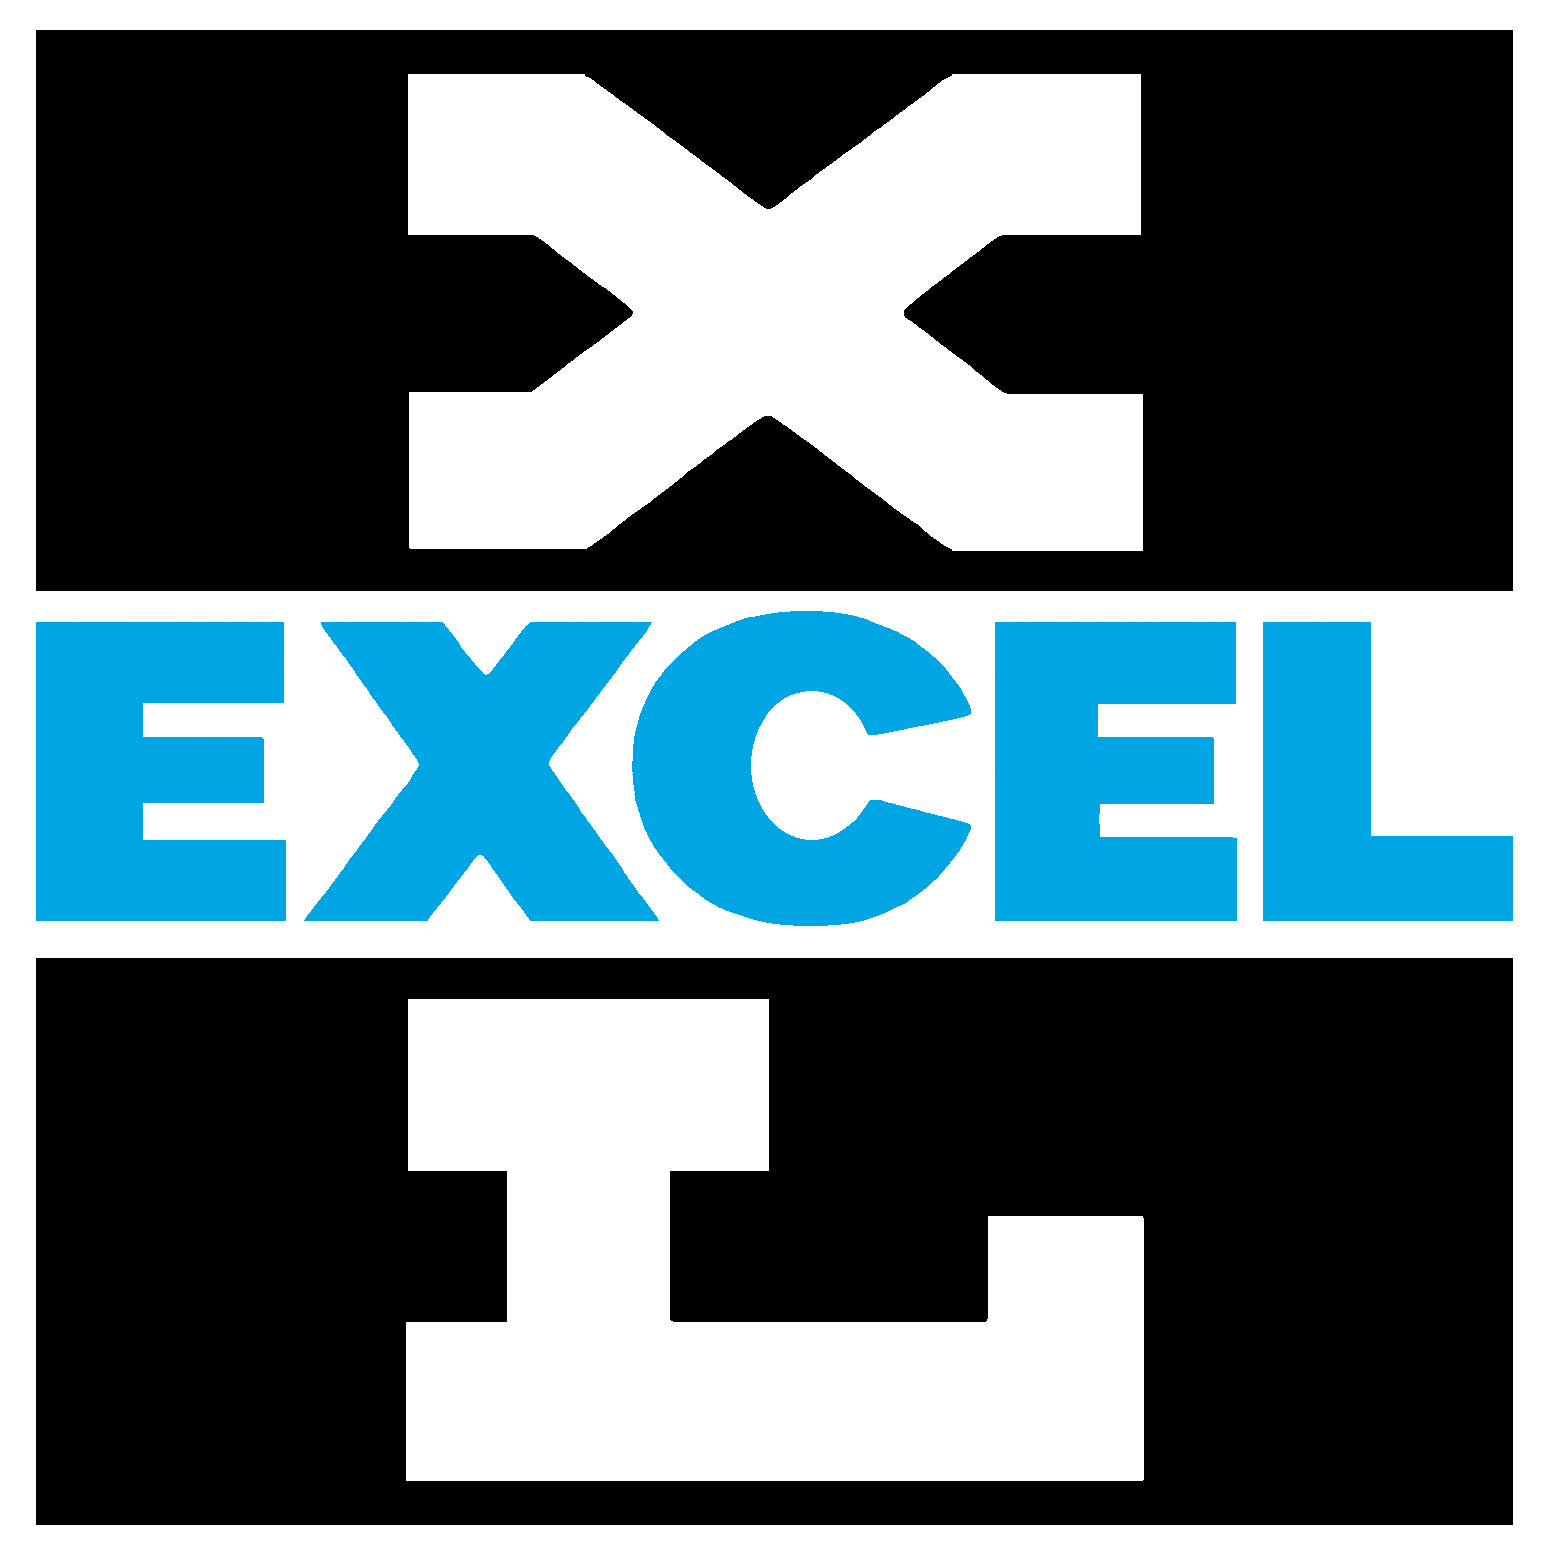 excel logo highres without tag